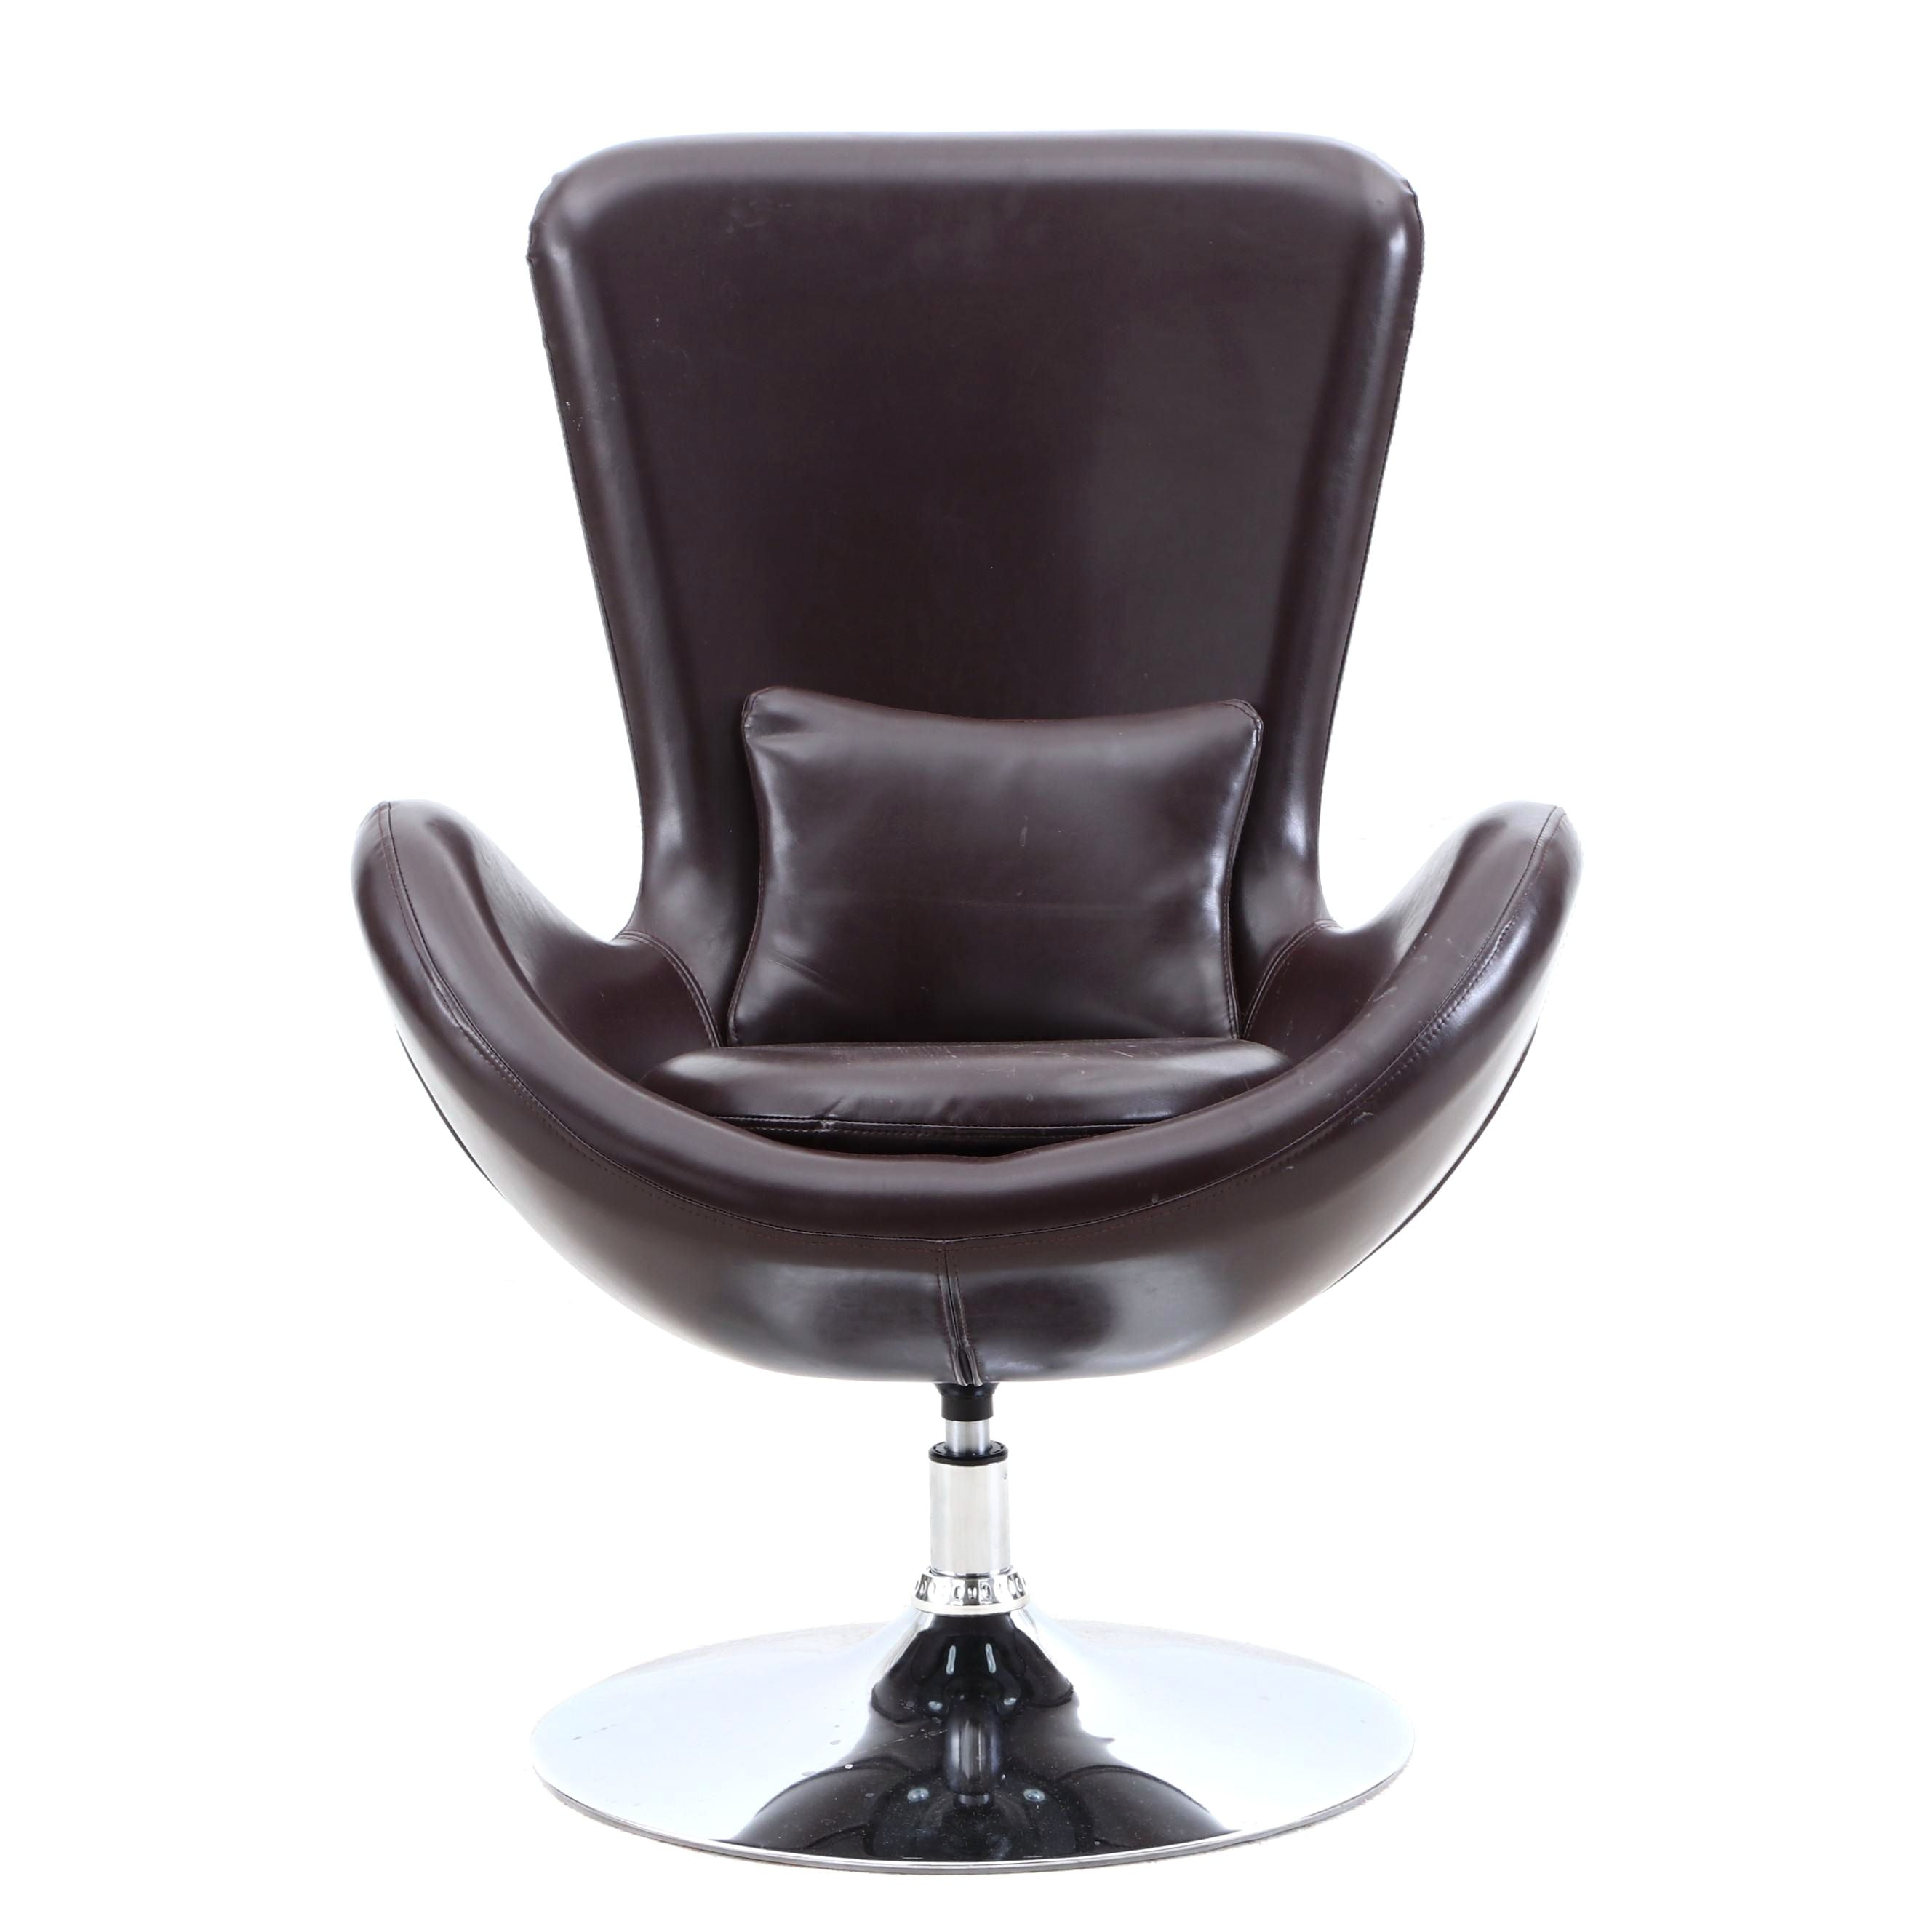 Orren Ellis Palisades Style Swivel Lounge Chair